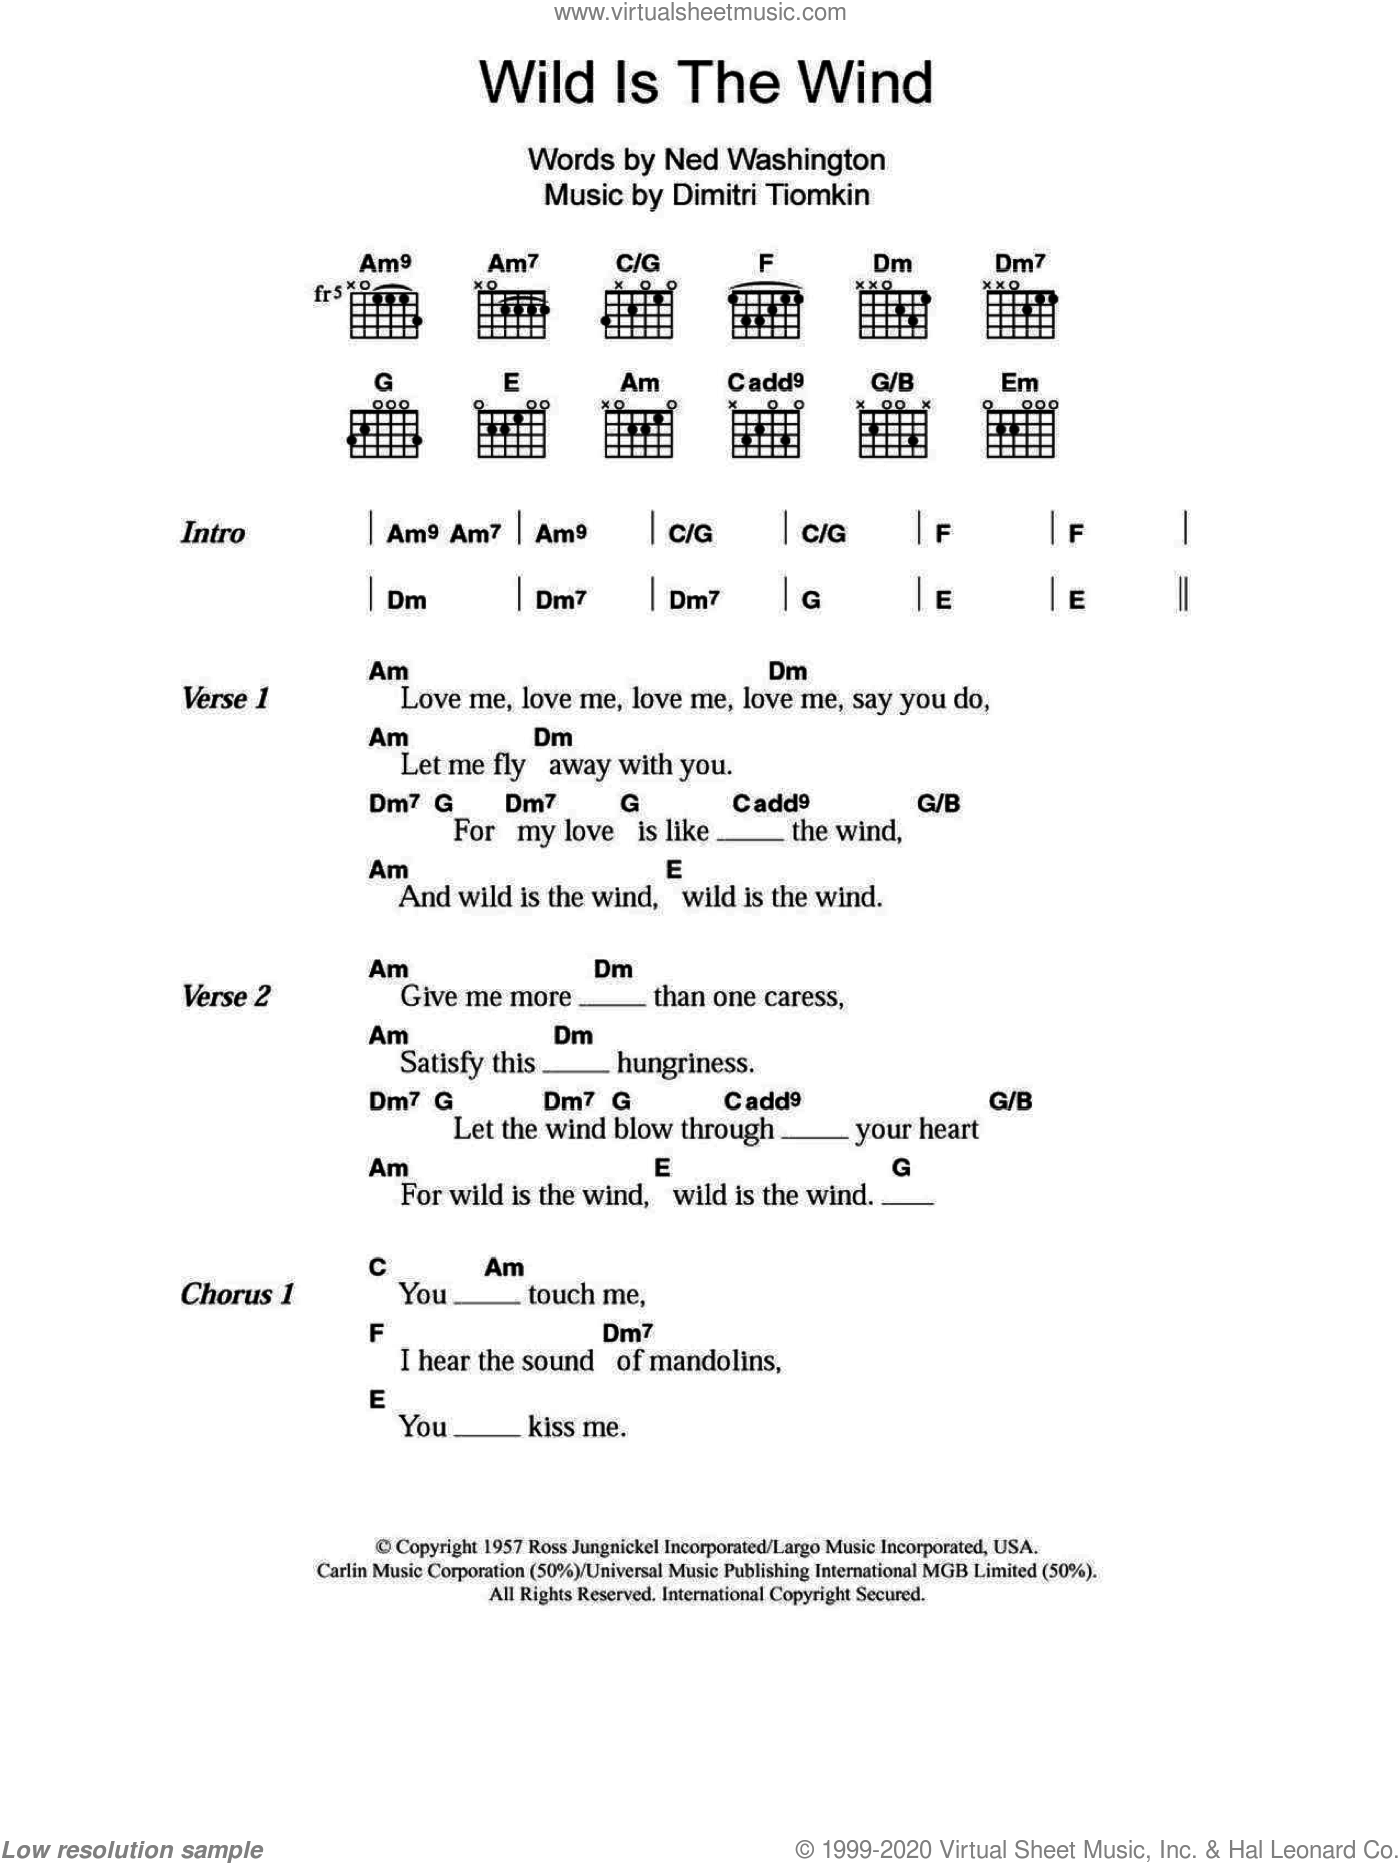 Wild Is The Wind sheet music for guitar (chords) by Nina Simone, David Bowie and Ned Washington, intermediate skill level